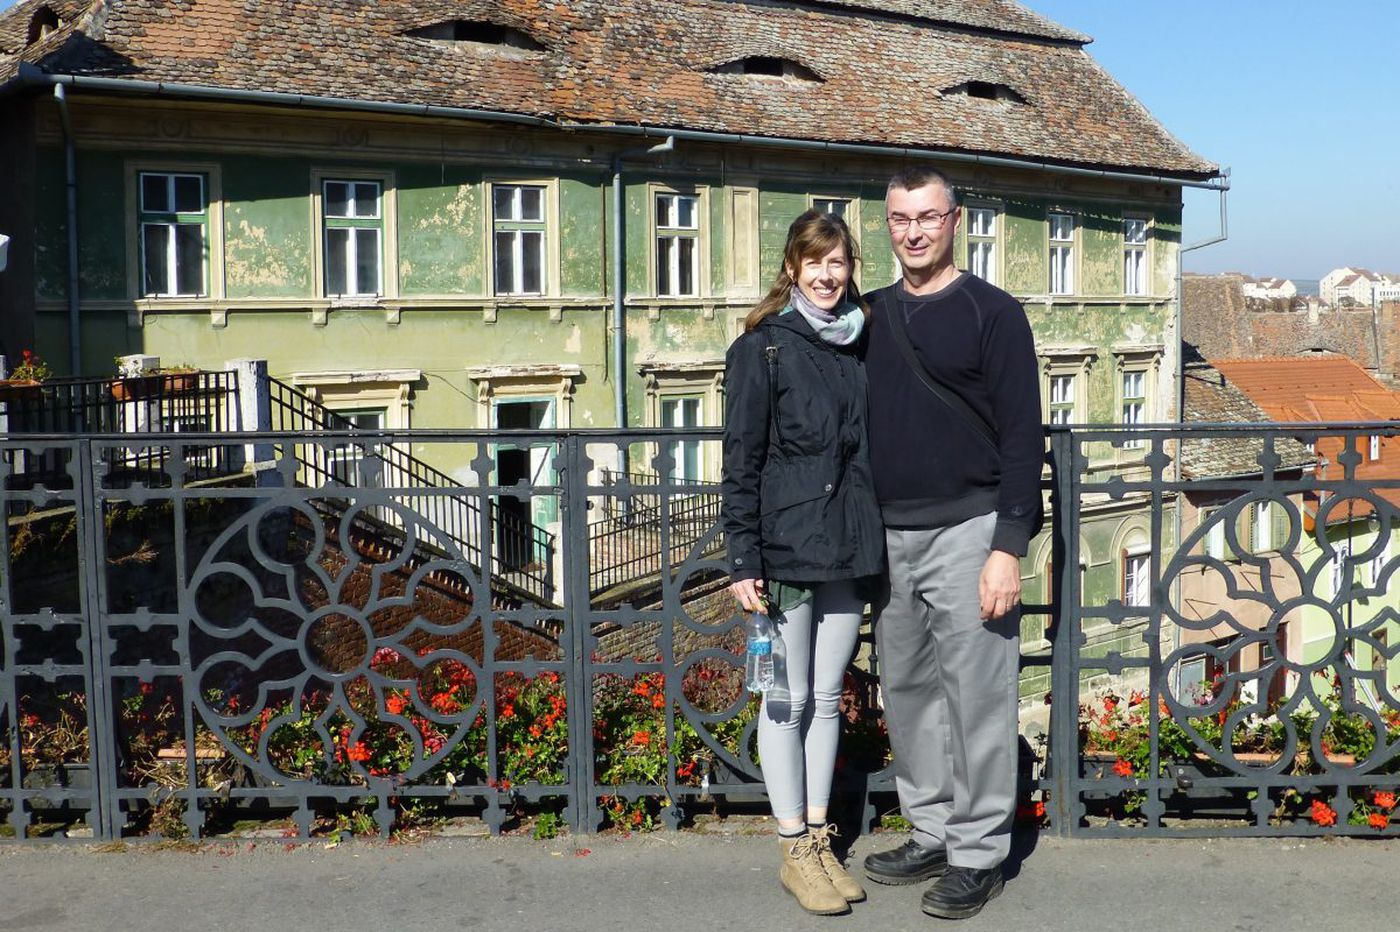 Personal Journey: In Romania, embracing cultural traditions